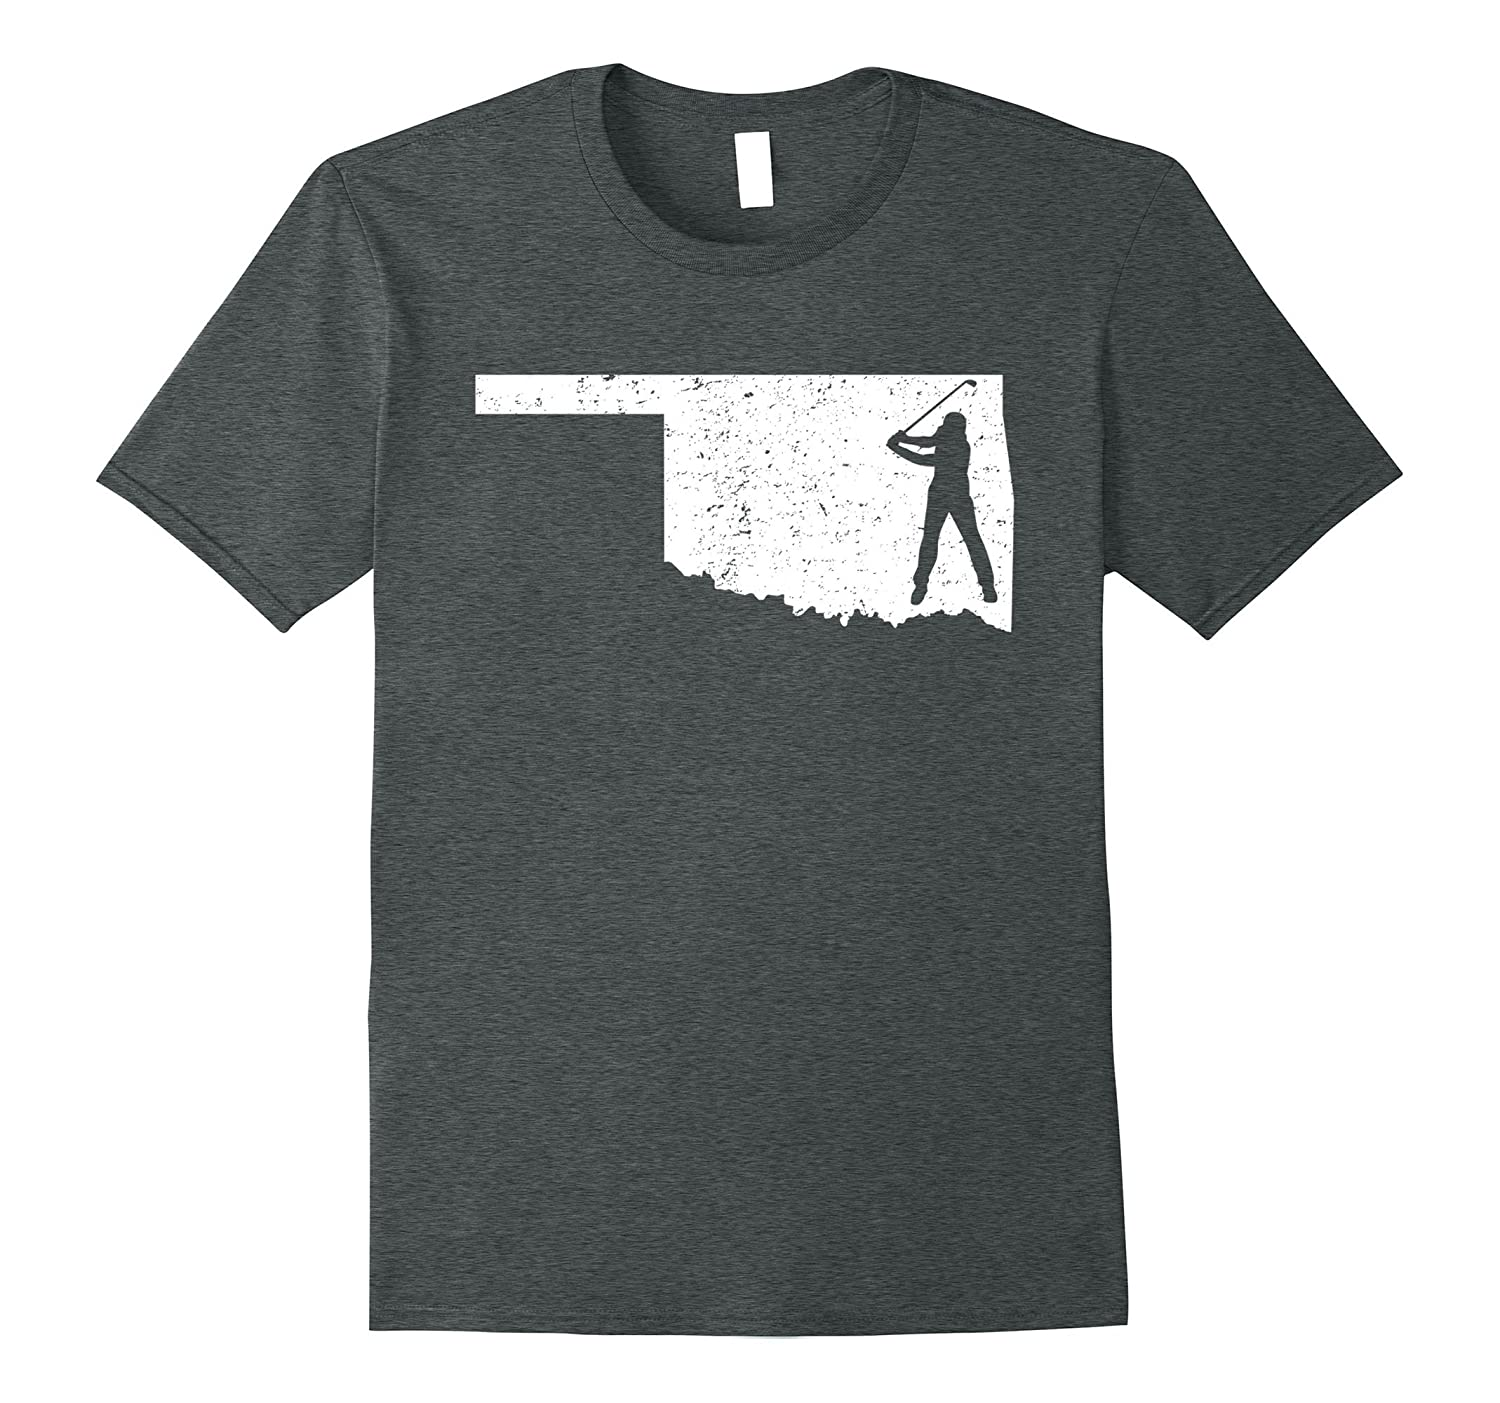 Oklahoma Golf Shirt Funny State Player Gift Love T-Shirt-TJ